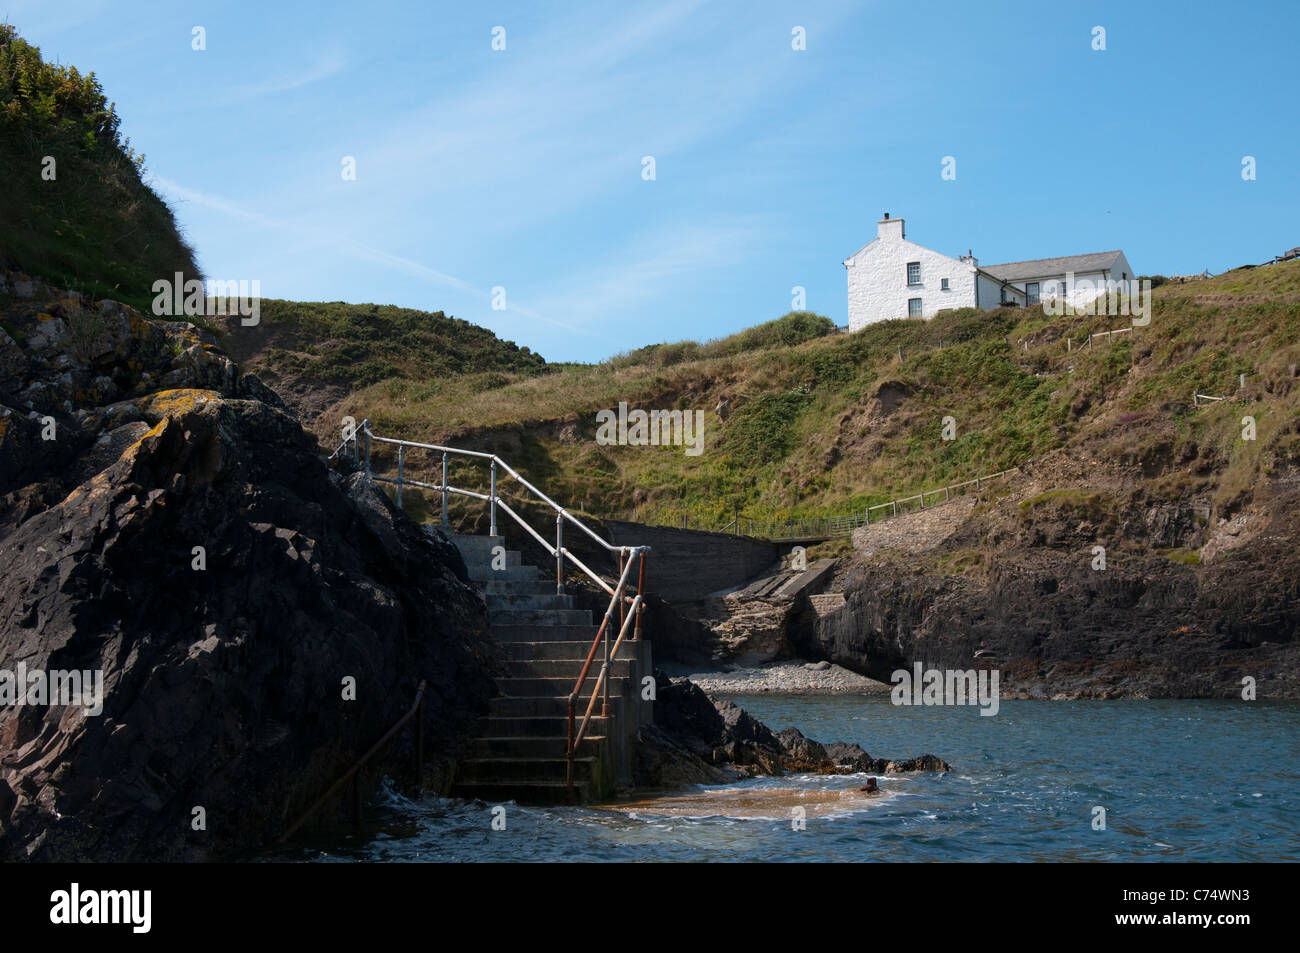 The only house on Ramsey Island in Pembrokeshire, Wales UK - Stock Image